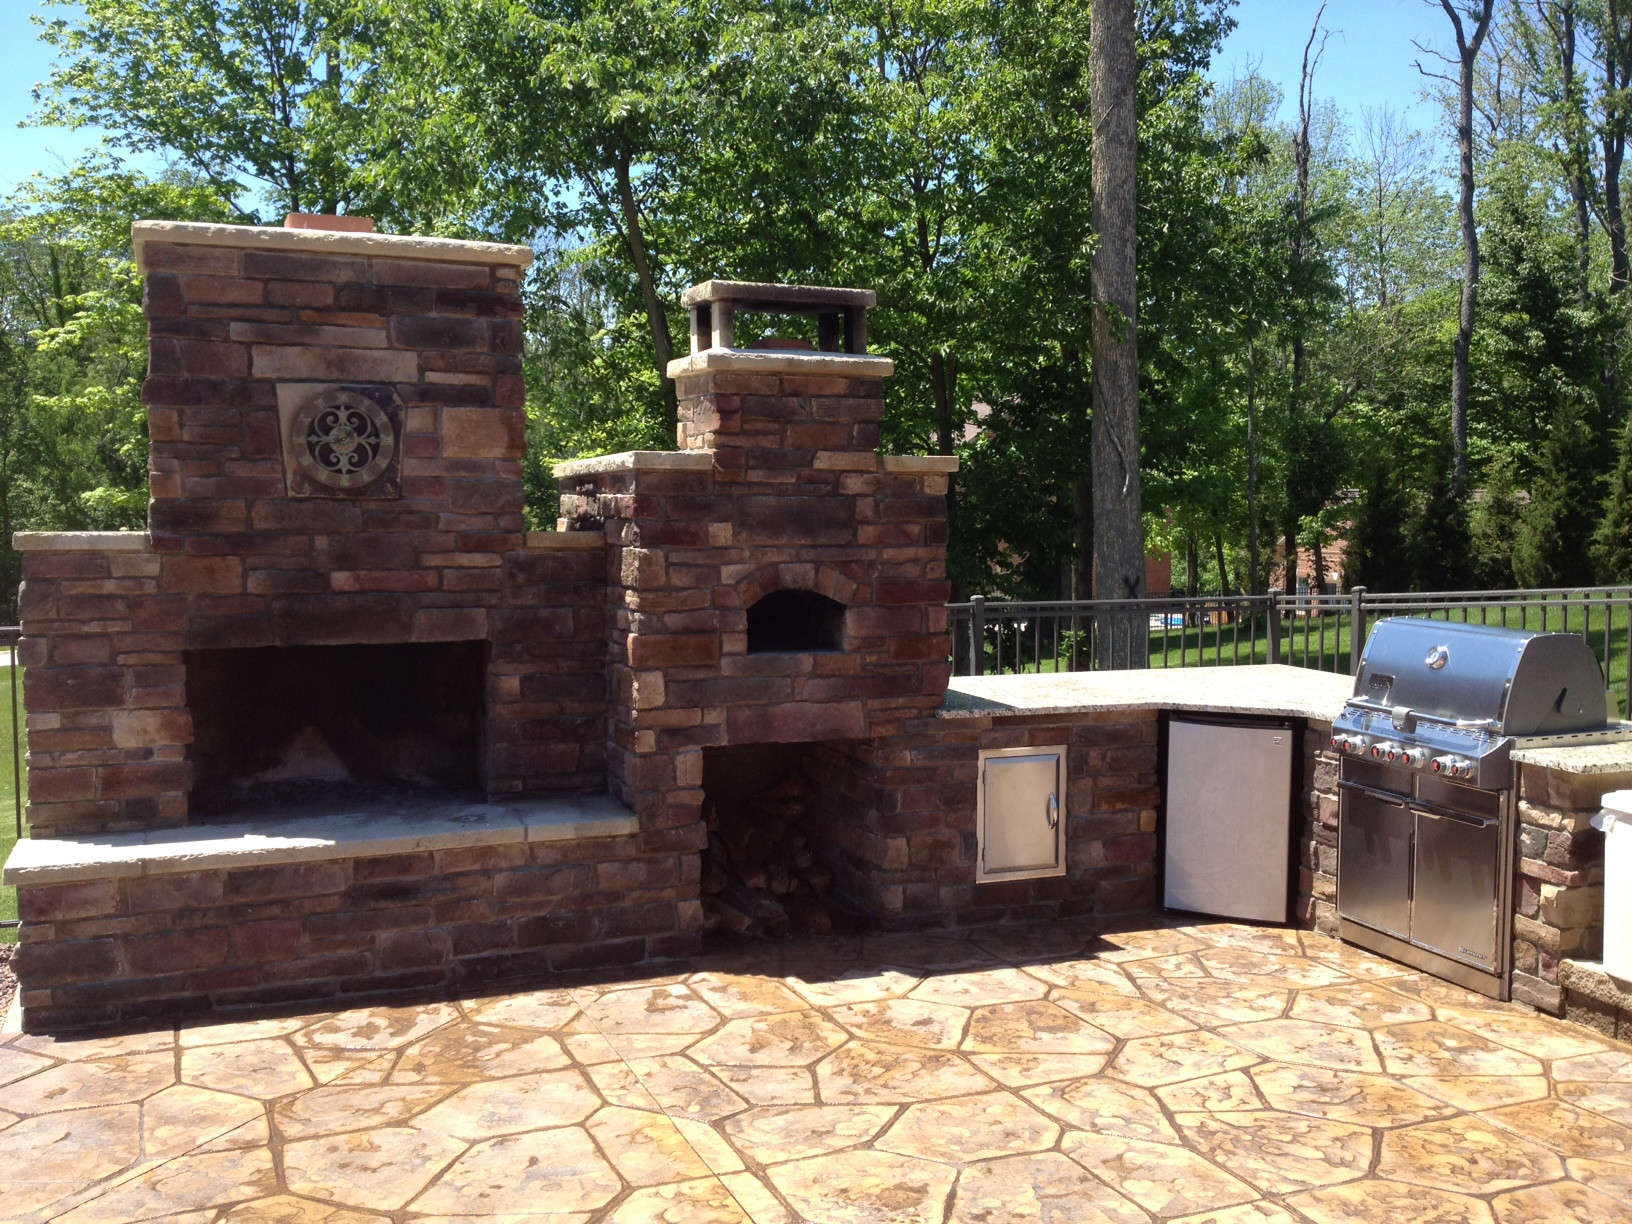 Best ideas about Outdoor Fireplace DIY . Save or Pin DIY Outdoor Fireplace and Pizza Oven bos Now.